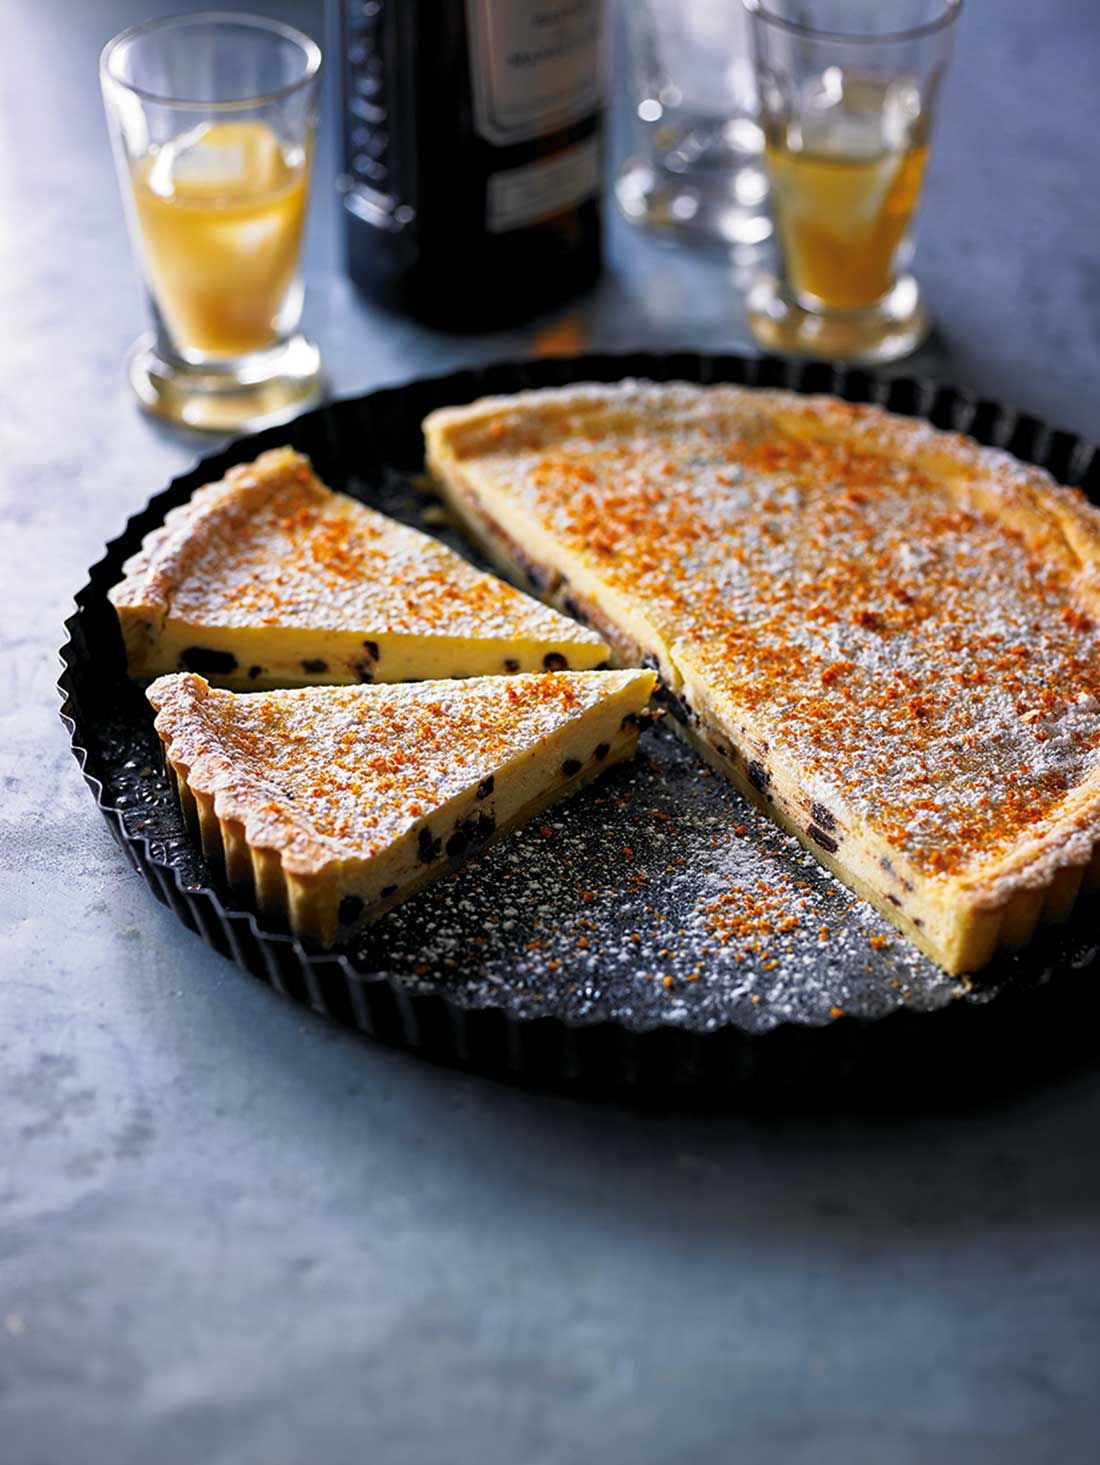 Discussion on this topic: Sweet Ricotta and Orange Tart, sweet-ricotta-and-orange-tart/